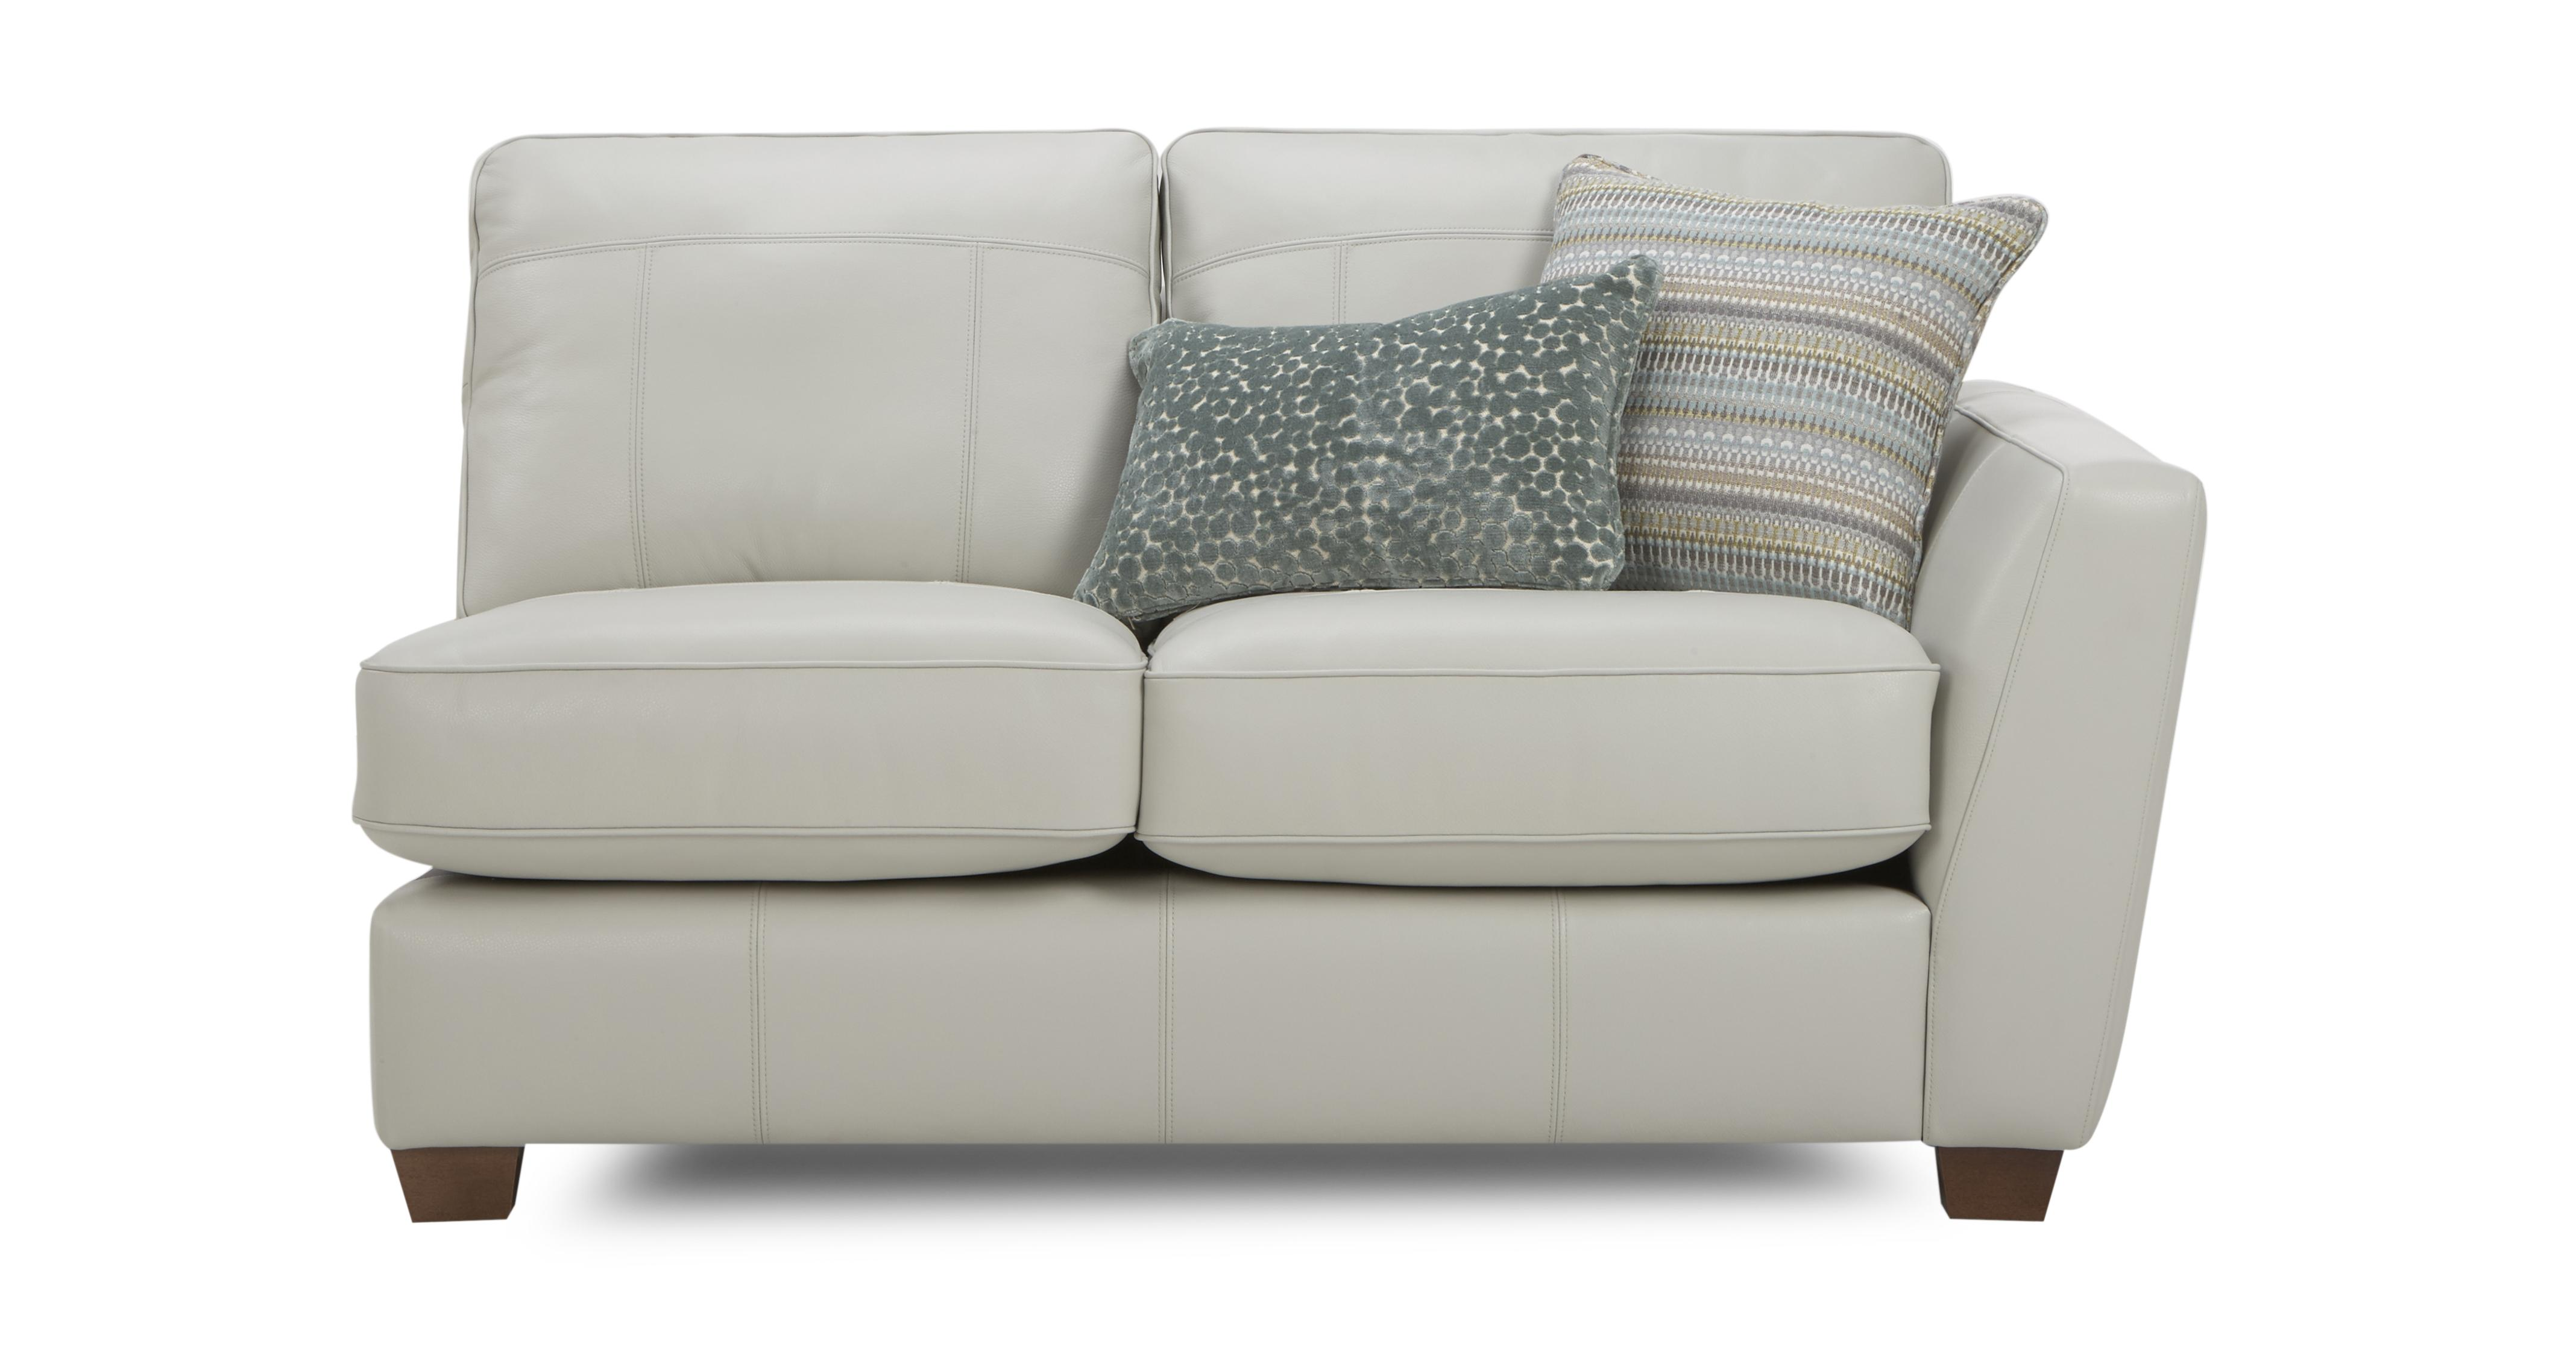 dfs sophia sofa reviews corner bed us leather right arm facing 2 seater unit ireland